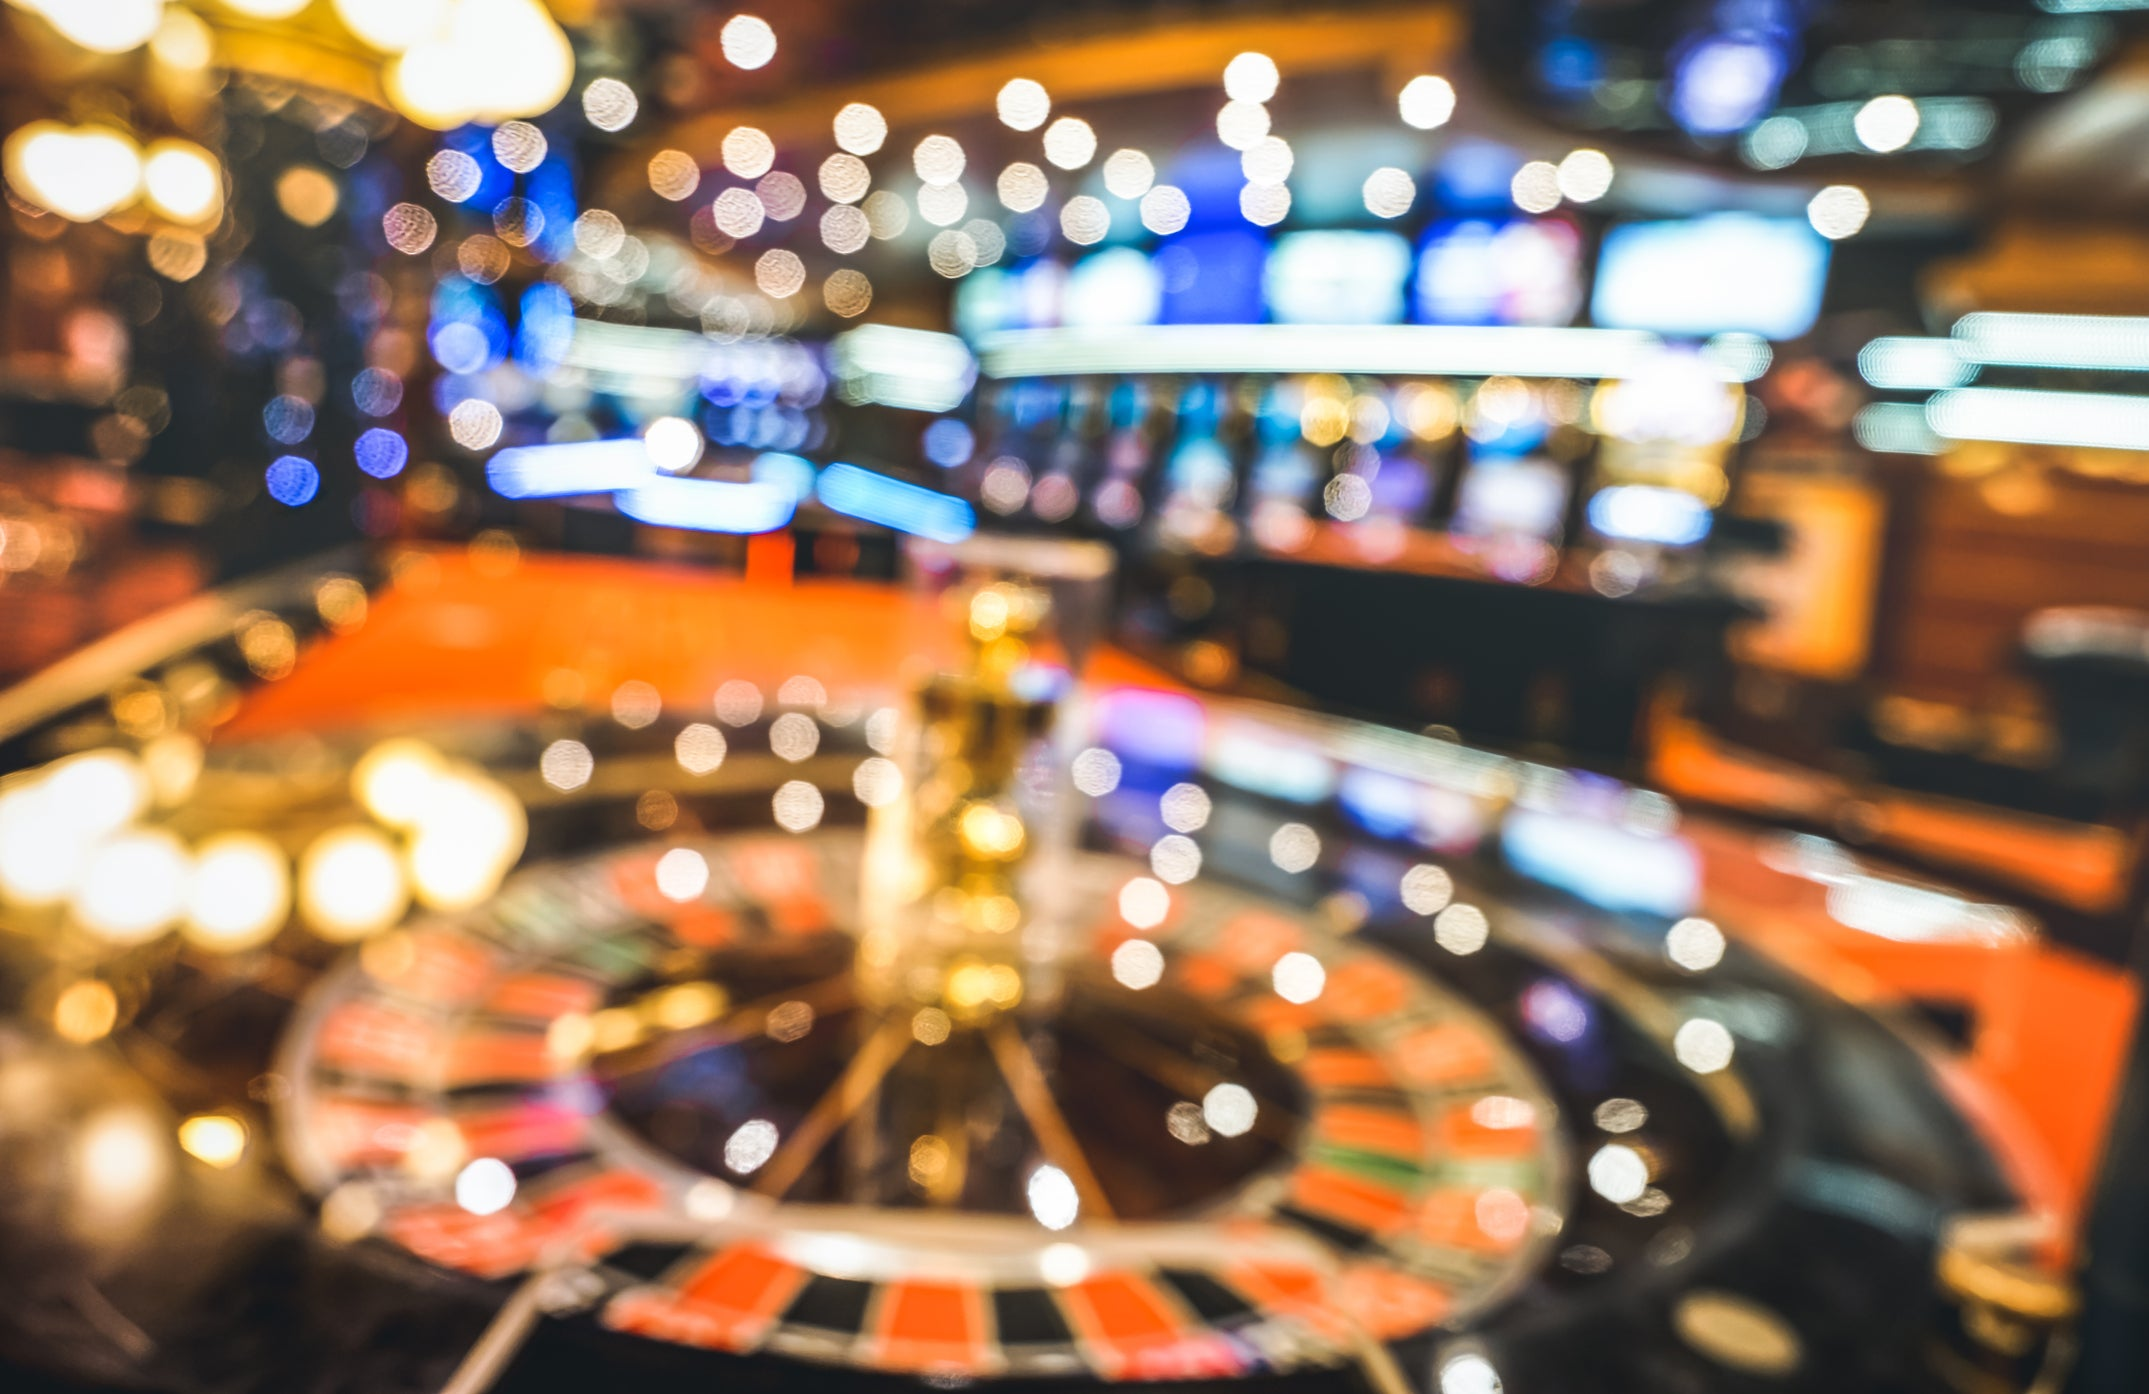 Finding The Best Machine With Best Slot Odds